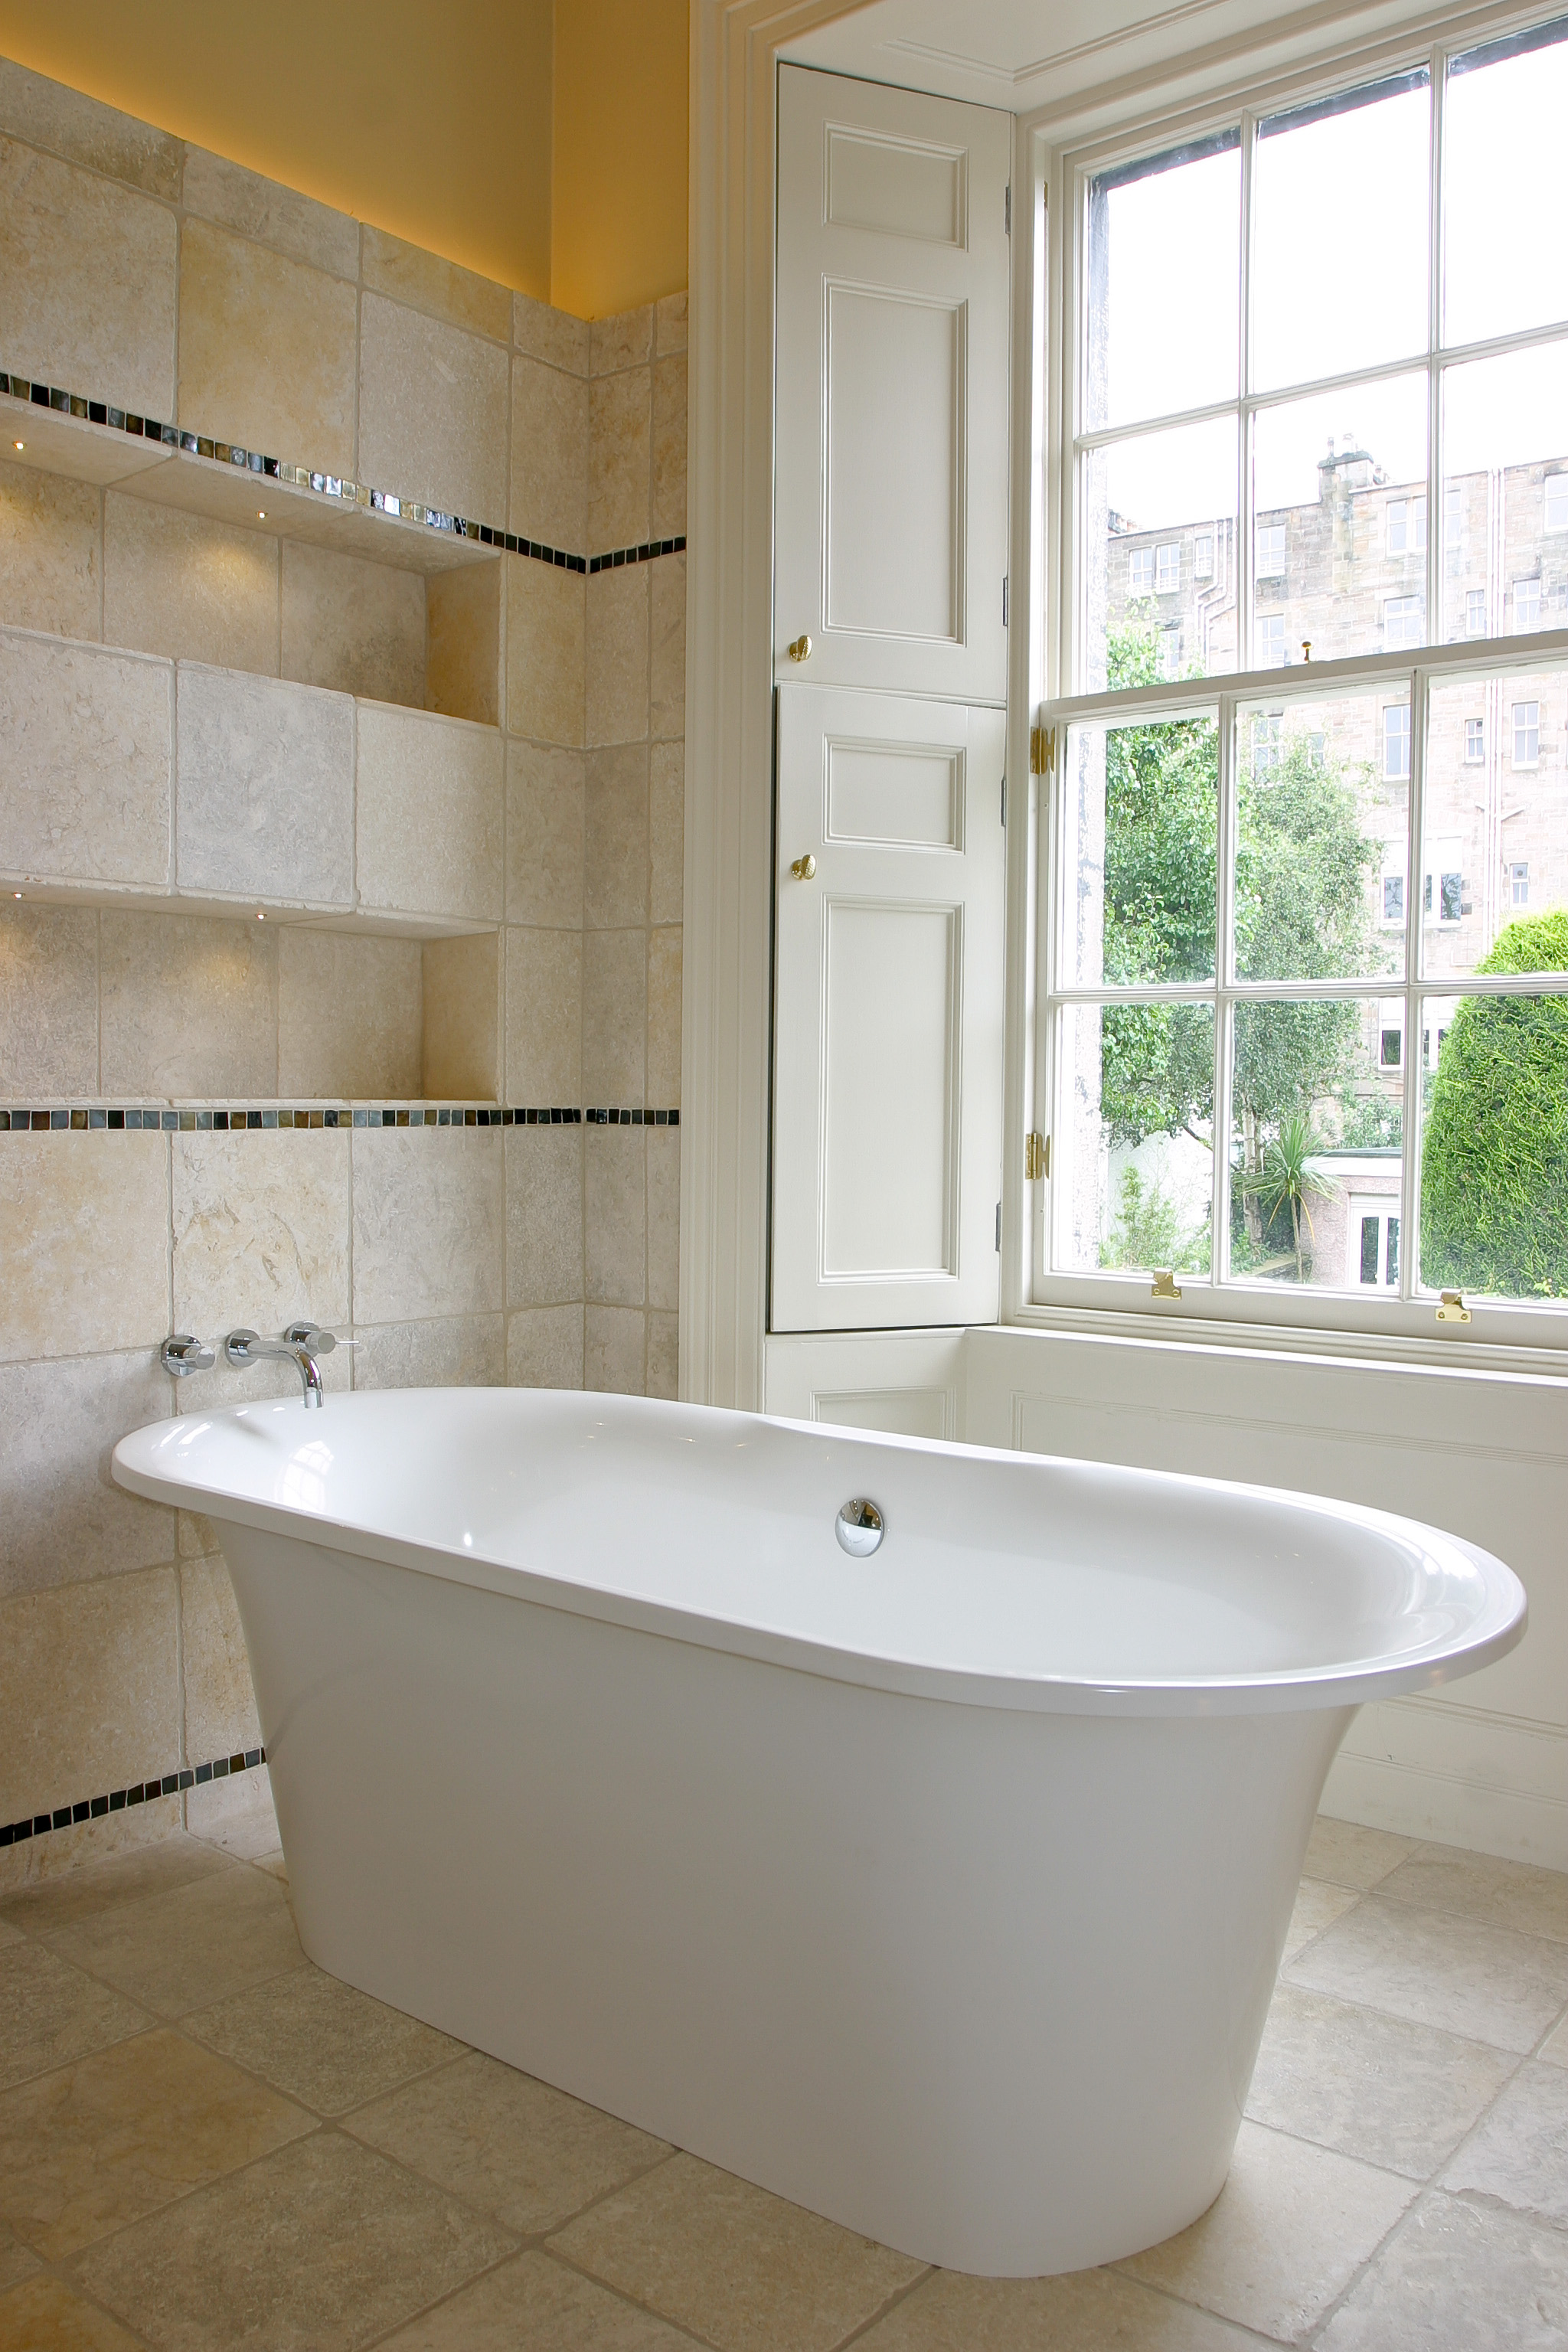 Rolltop bath in traditional home and wall mounted taps